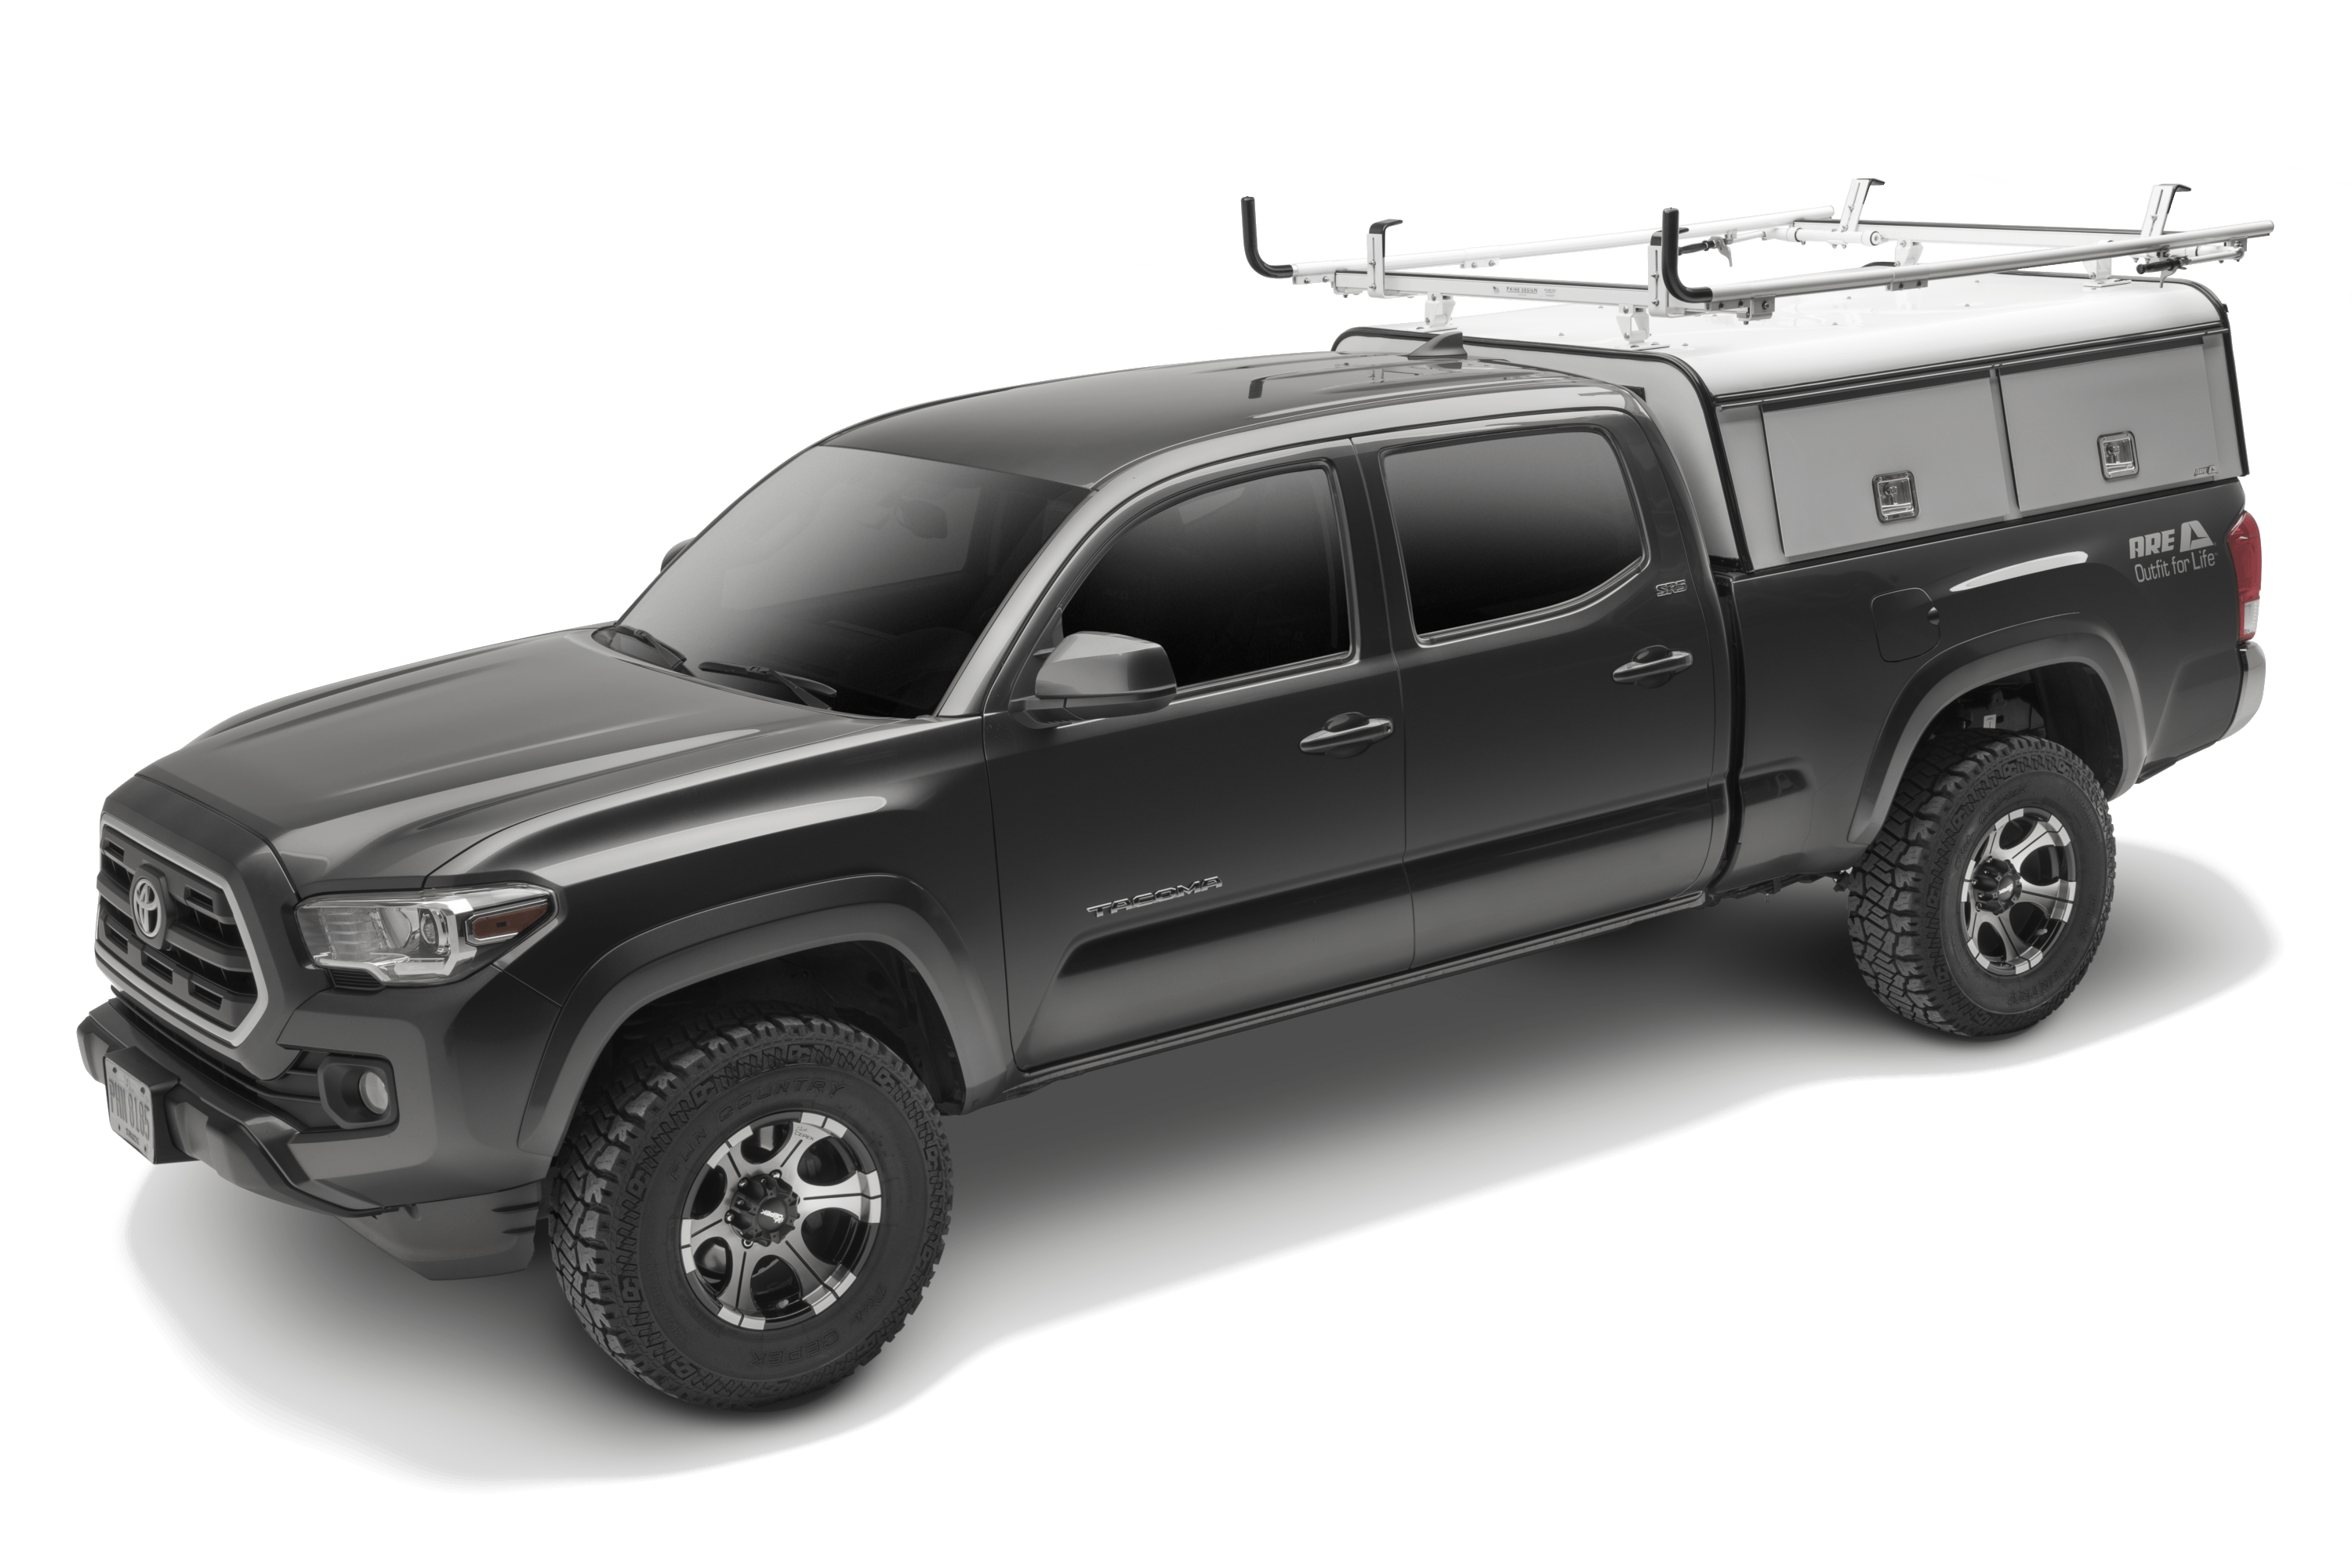 ARE DCU shown installed on a Toyota Tacoma.